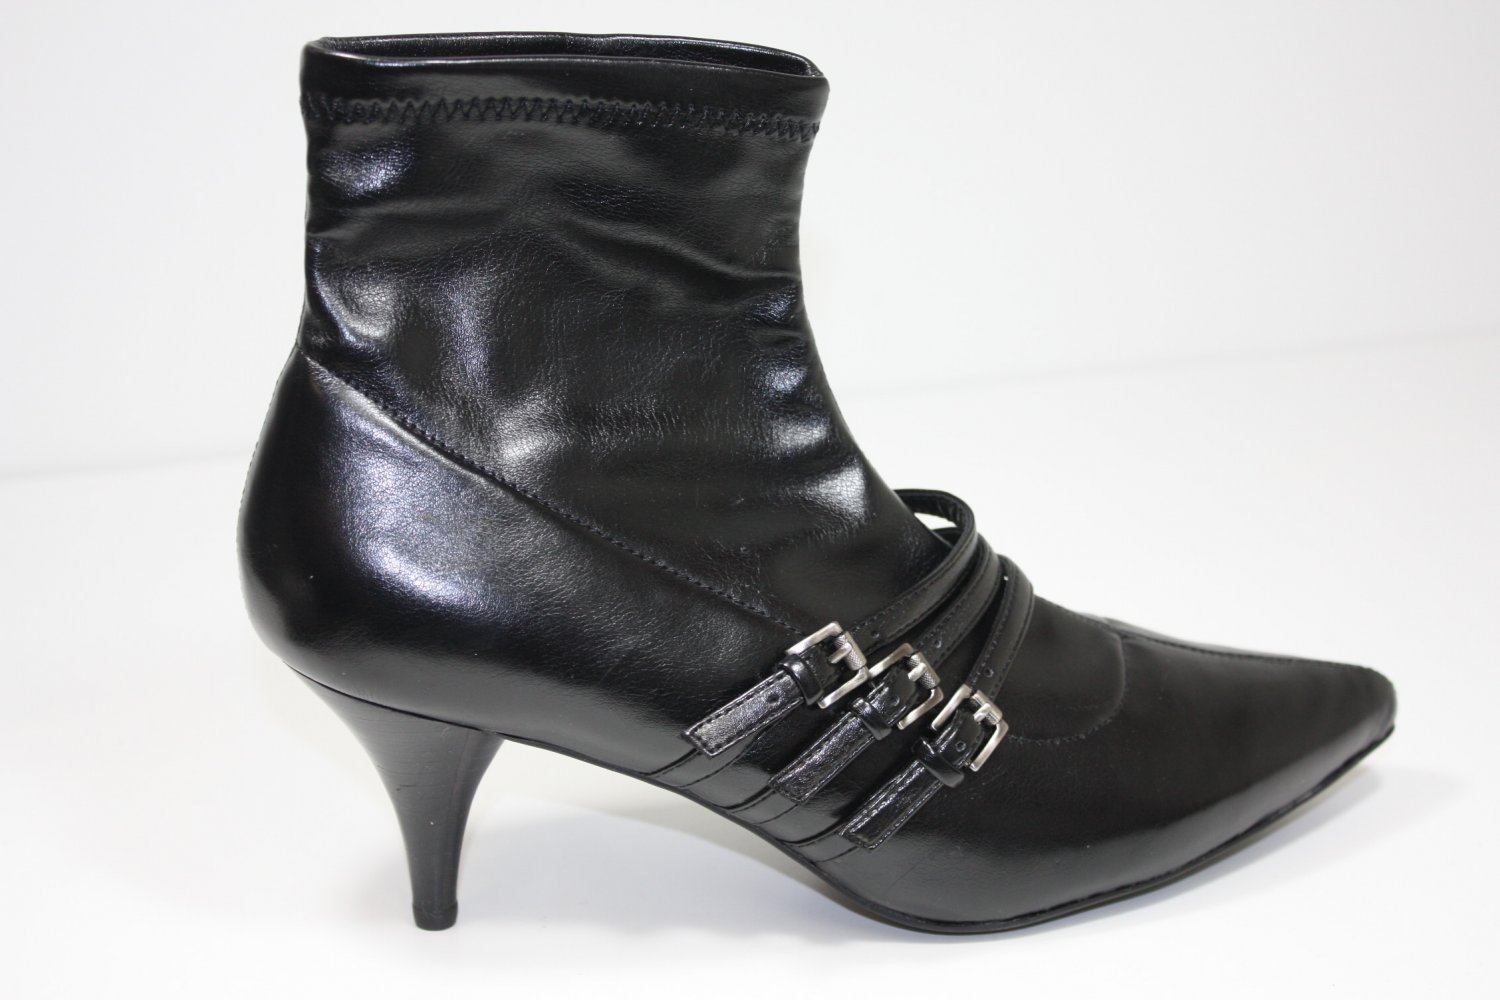 BCBG Sandy Bootie Ankle Boots Black Shoes US 11 $119